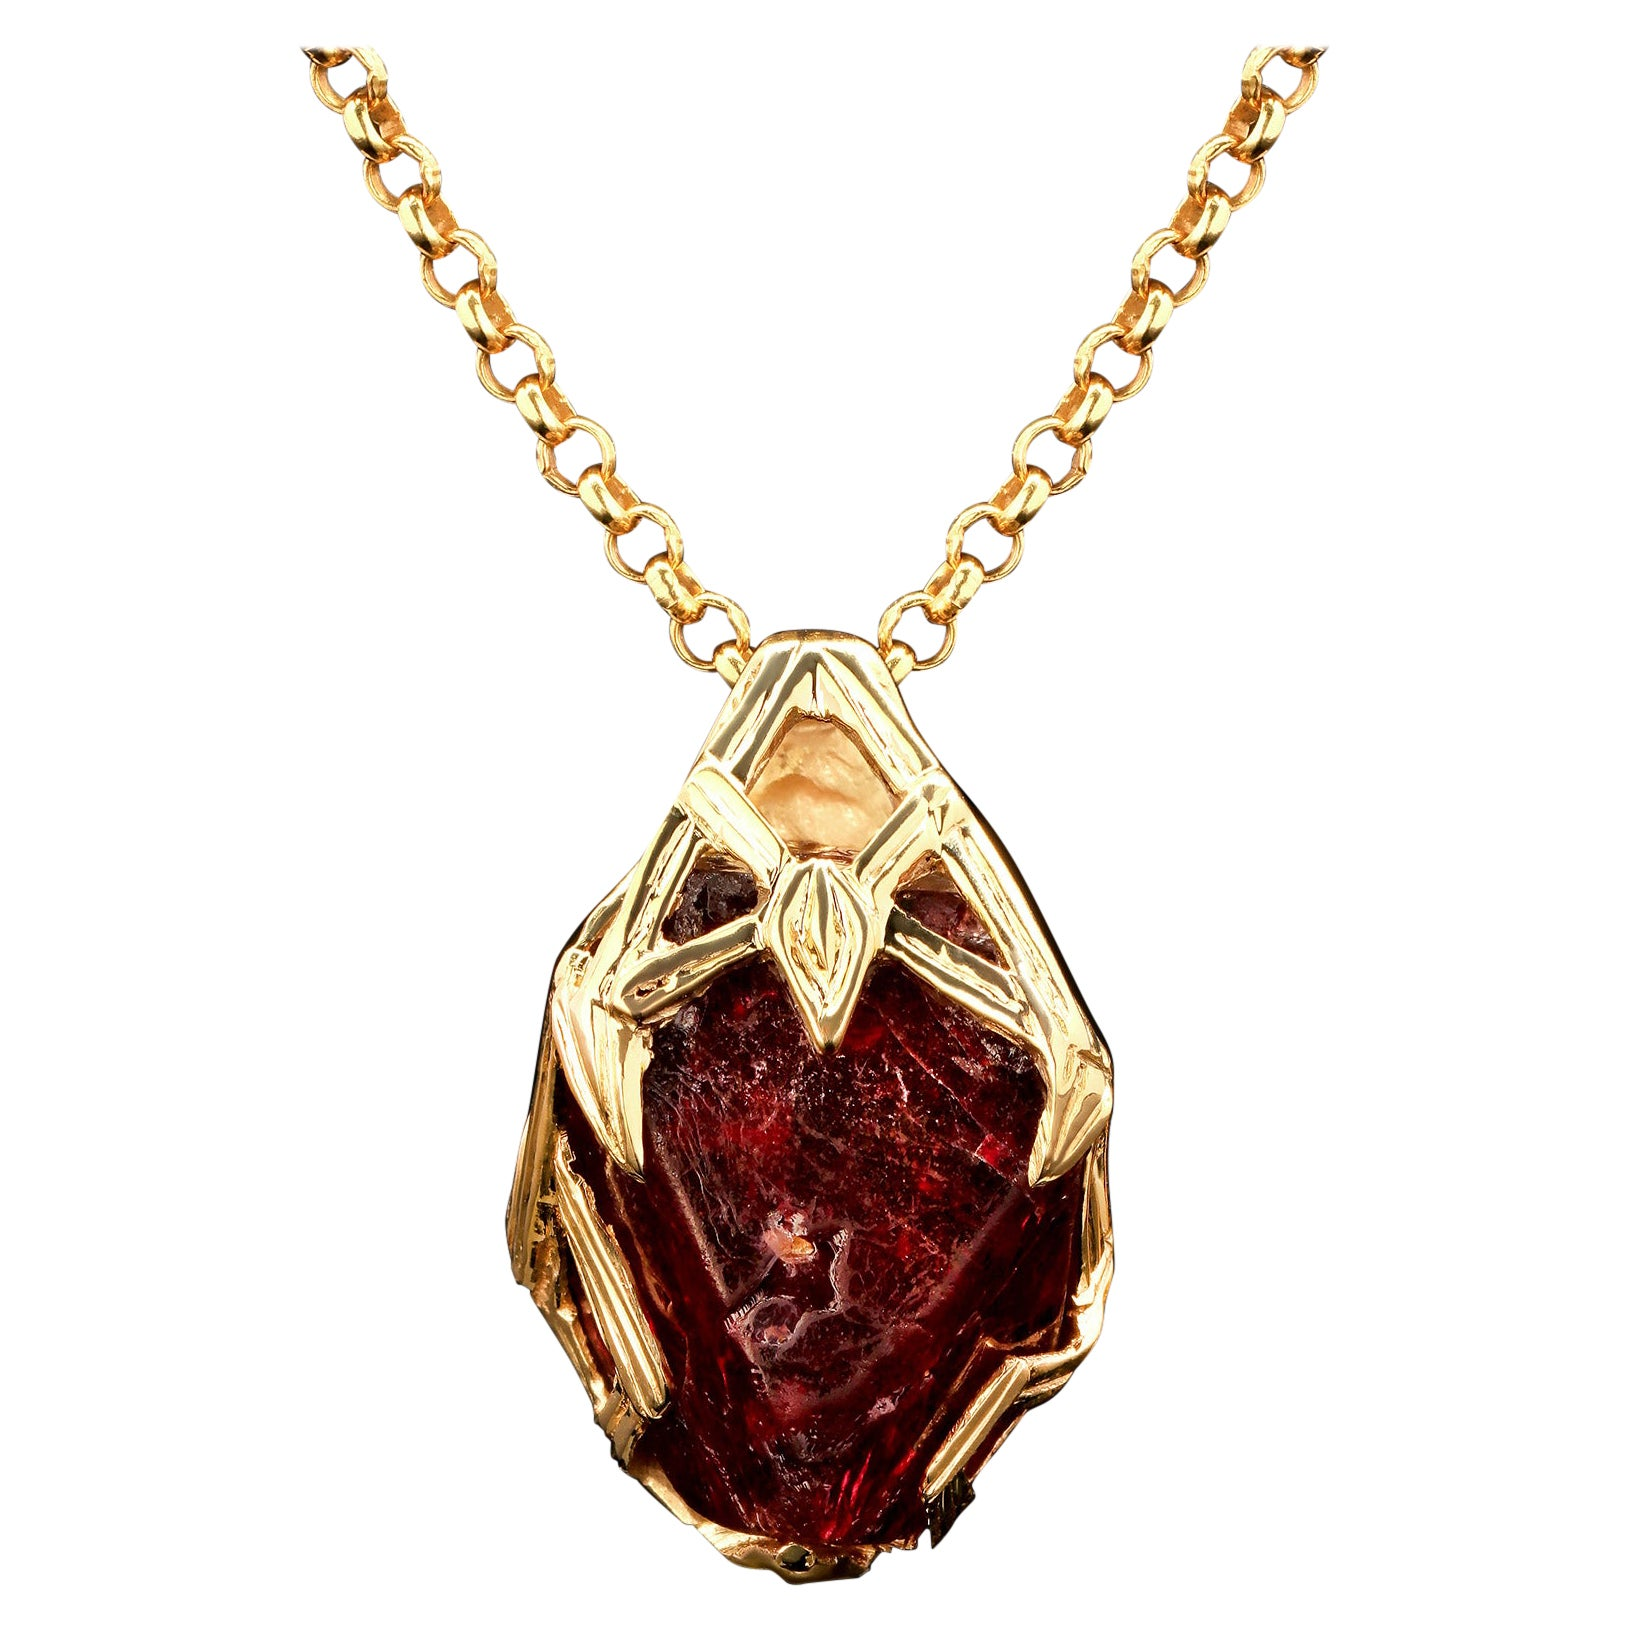 Red Spinel Crystal 18K Yellow Gold Pendant Dark Cherry Natural Raw Uncut Stone